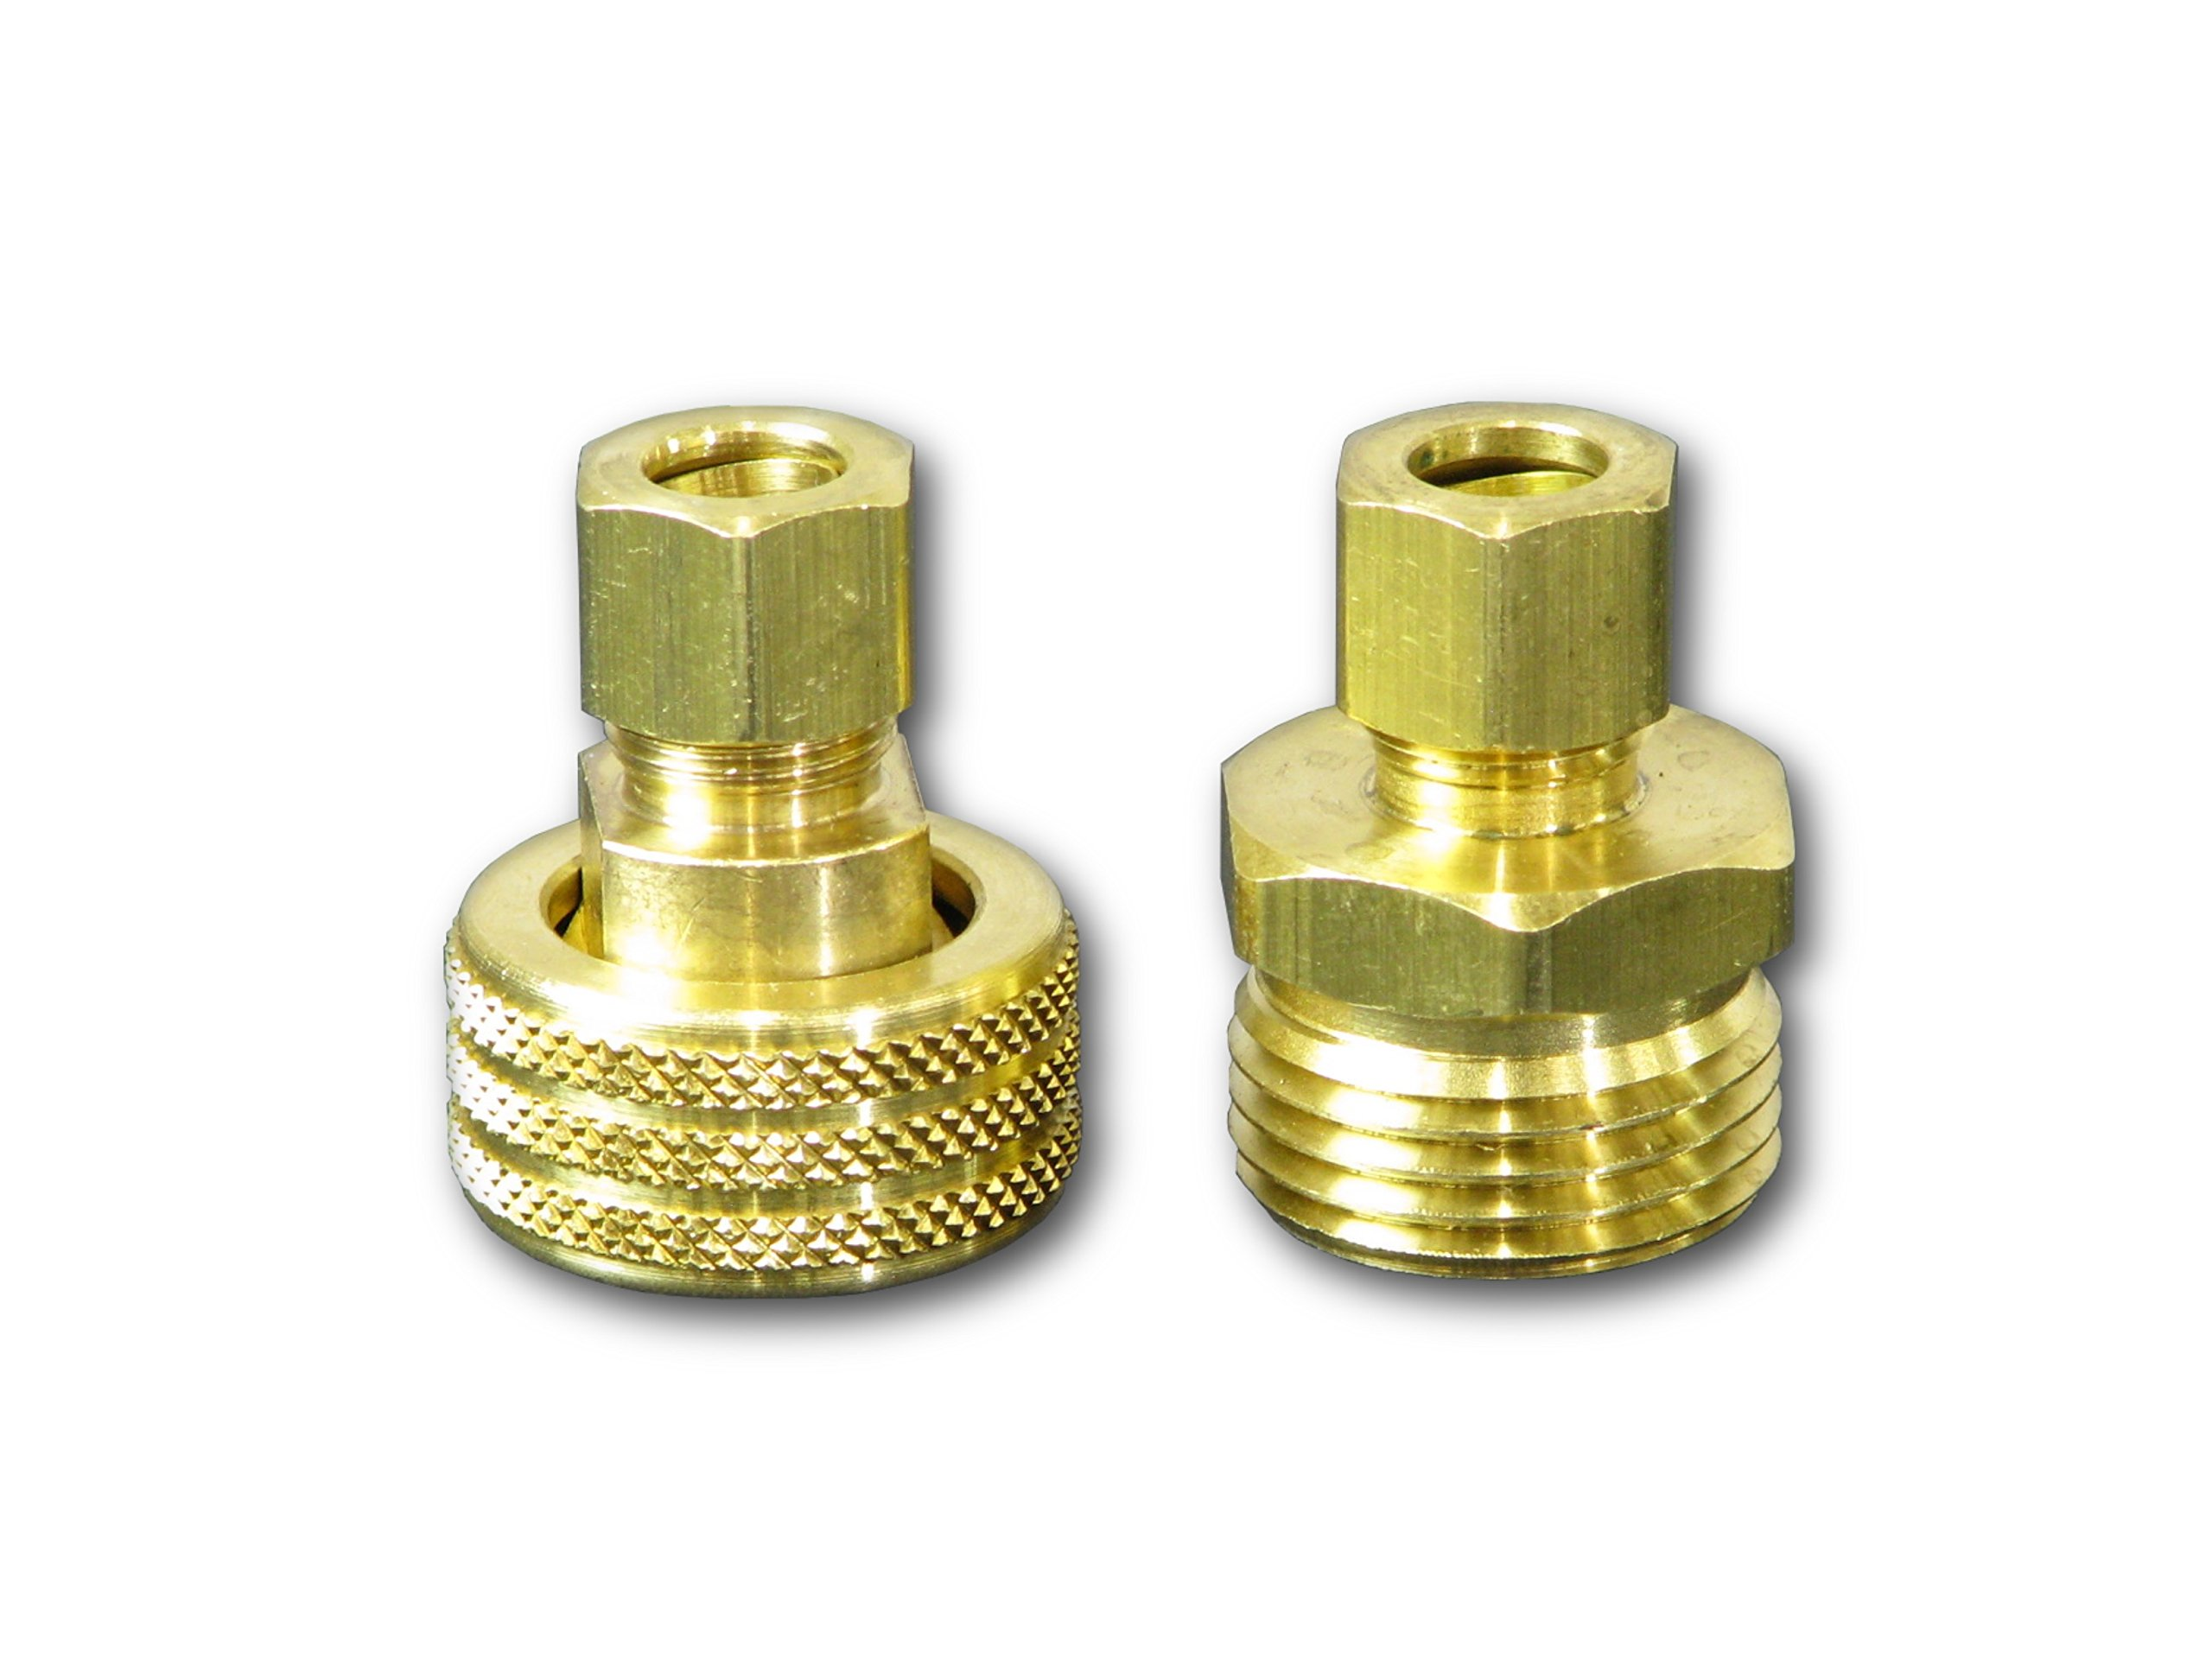 Coldbreak Brewing Equipment CBCOV38 Conversion Kit to GHT Female/Male Garden Hose Fitting for Immersion Wort Chillers, 3/8'' Compression, Brass